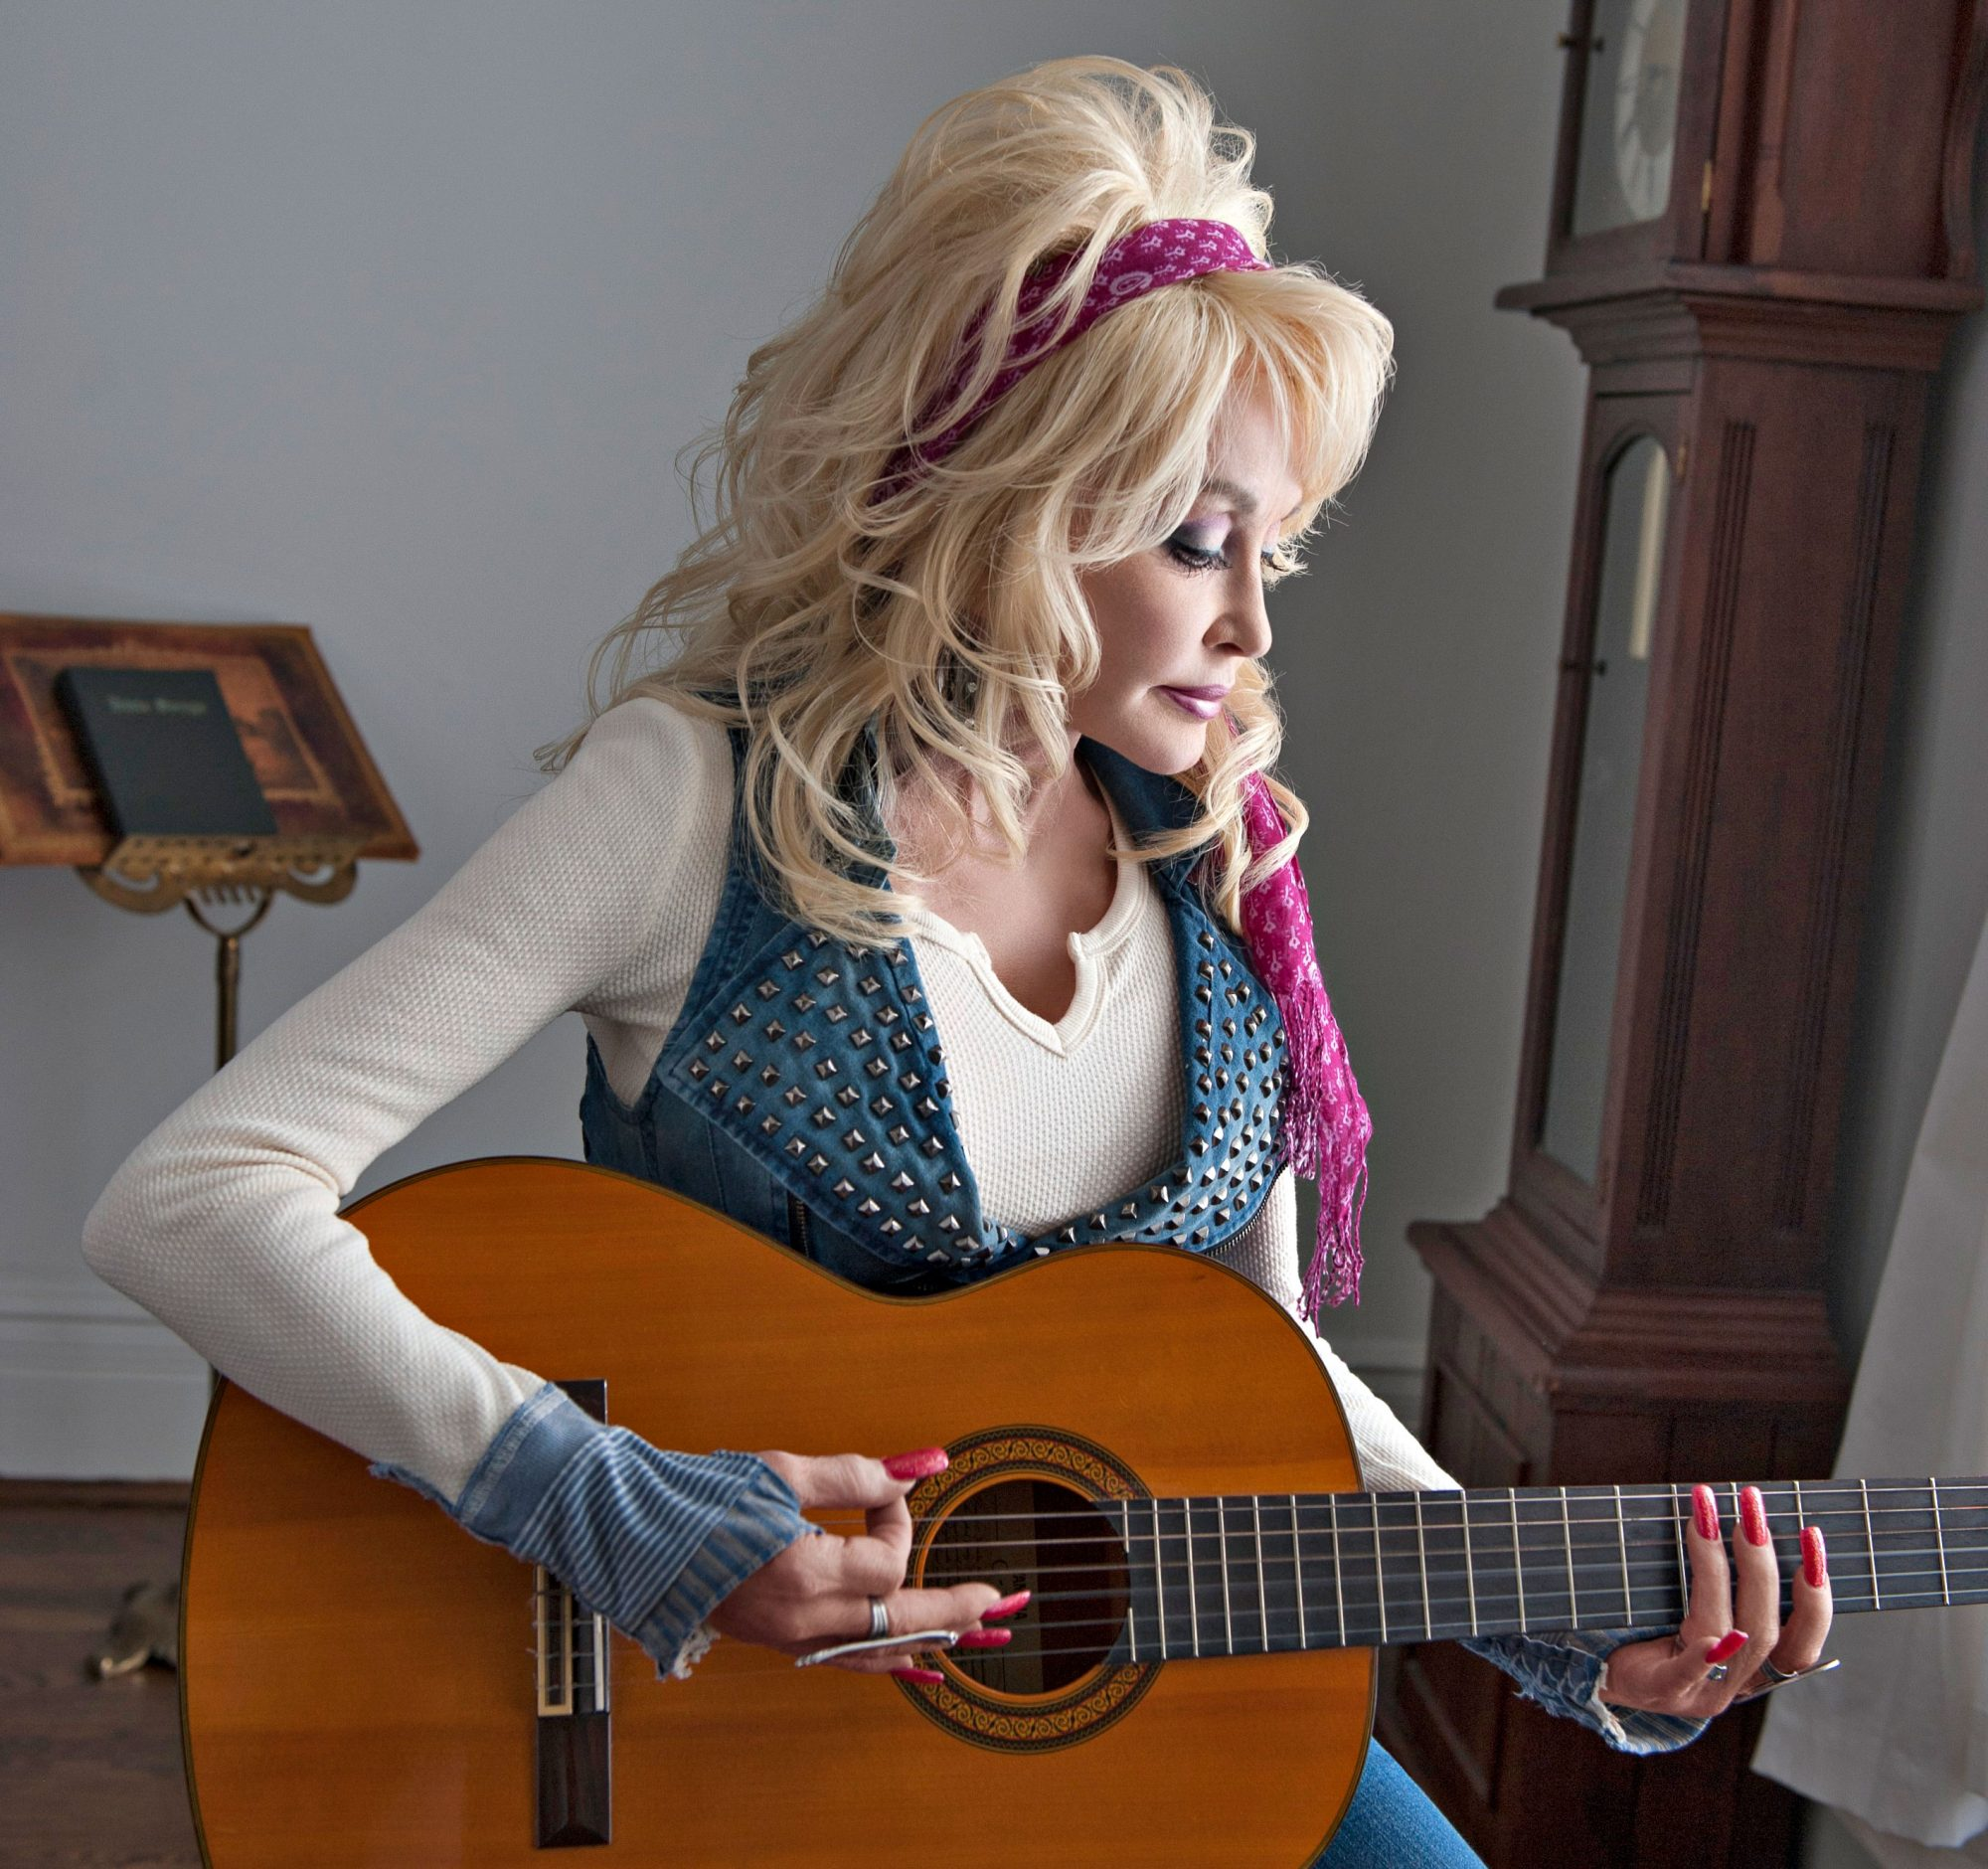 Dolly Parton Southerner of the Year for Her Imagination Library